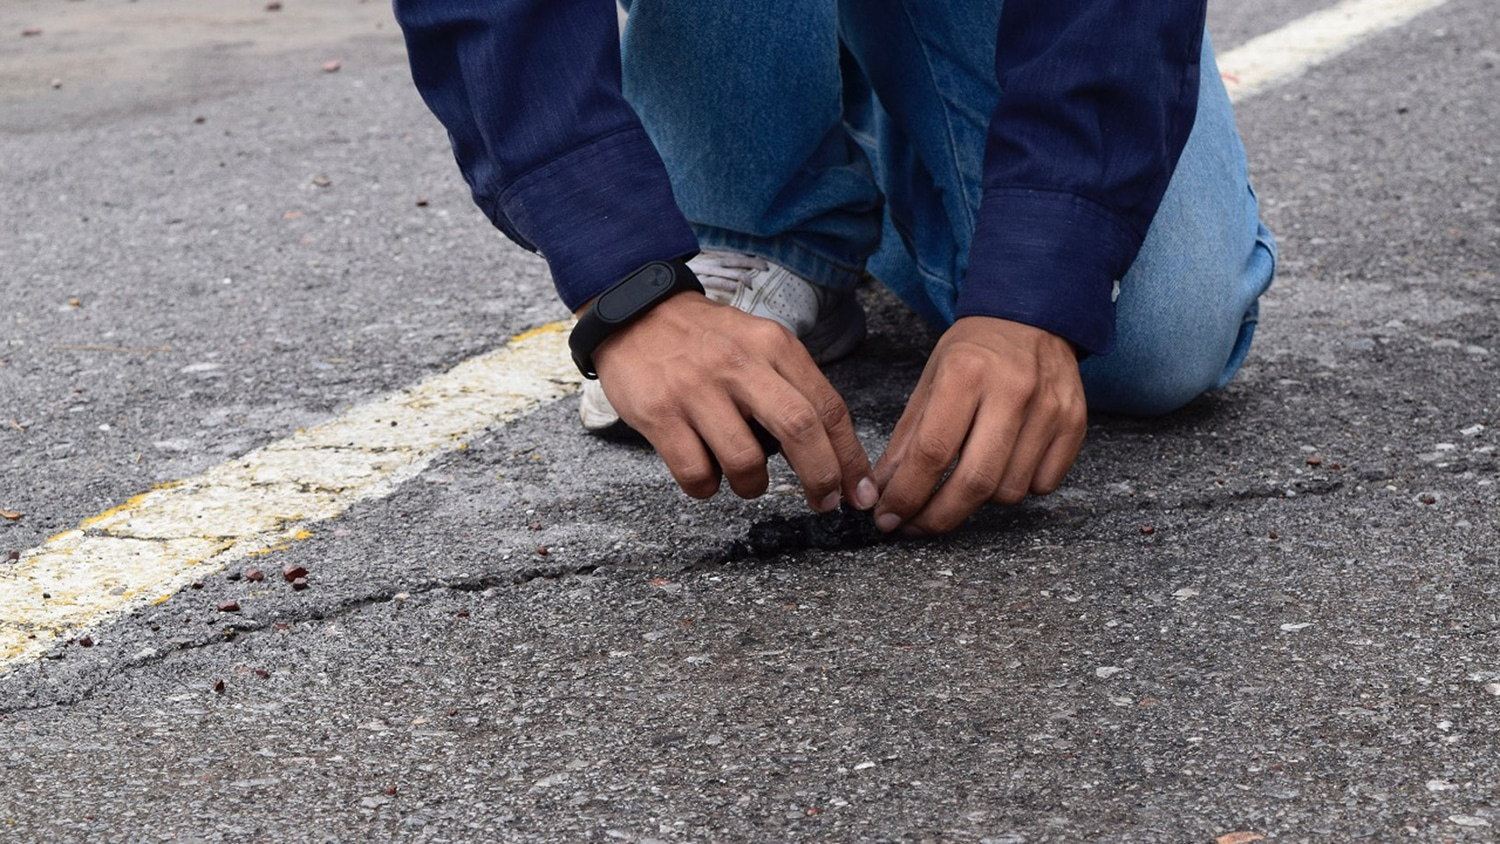 Pavement made of recycled tires self-repairs every time it rains